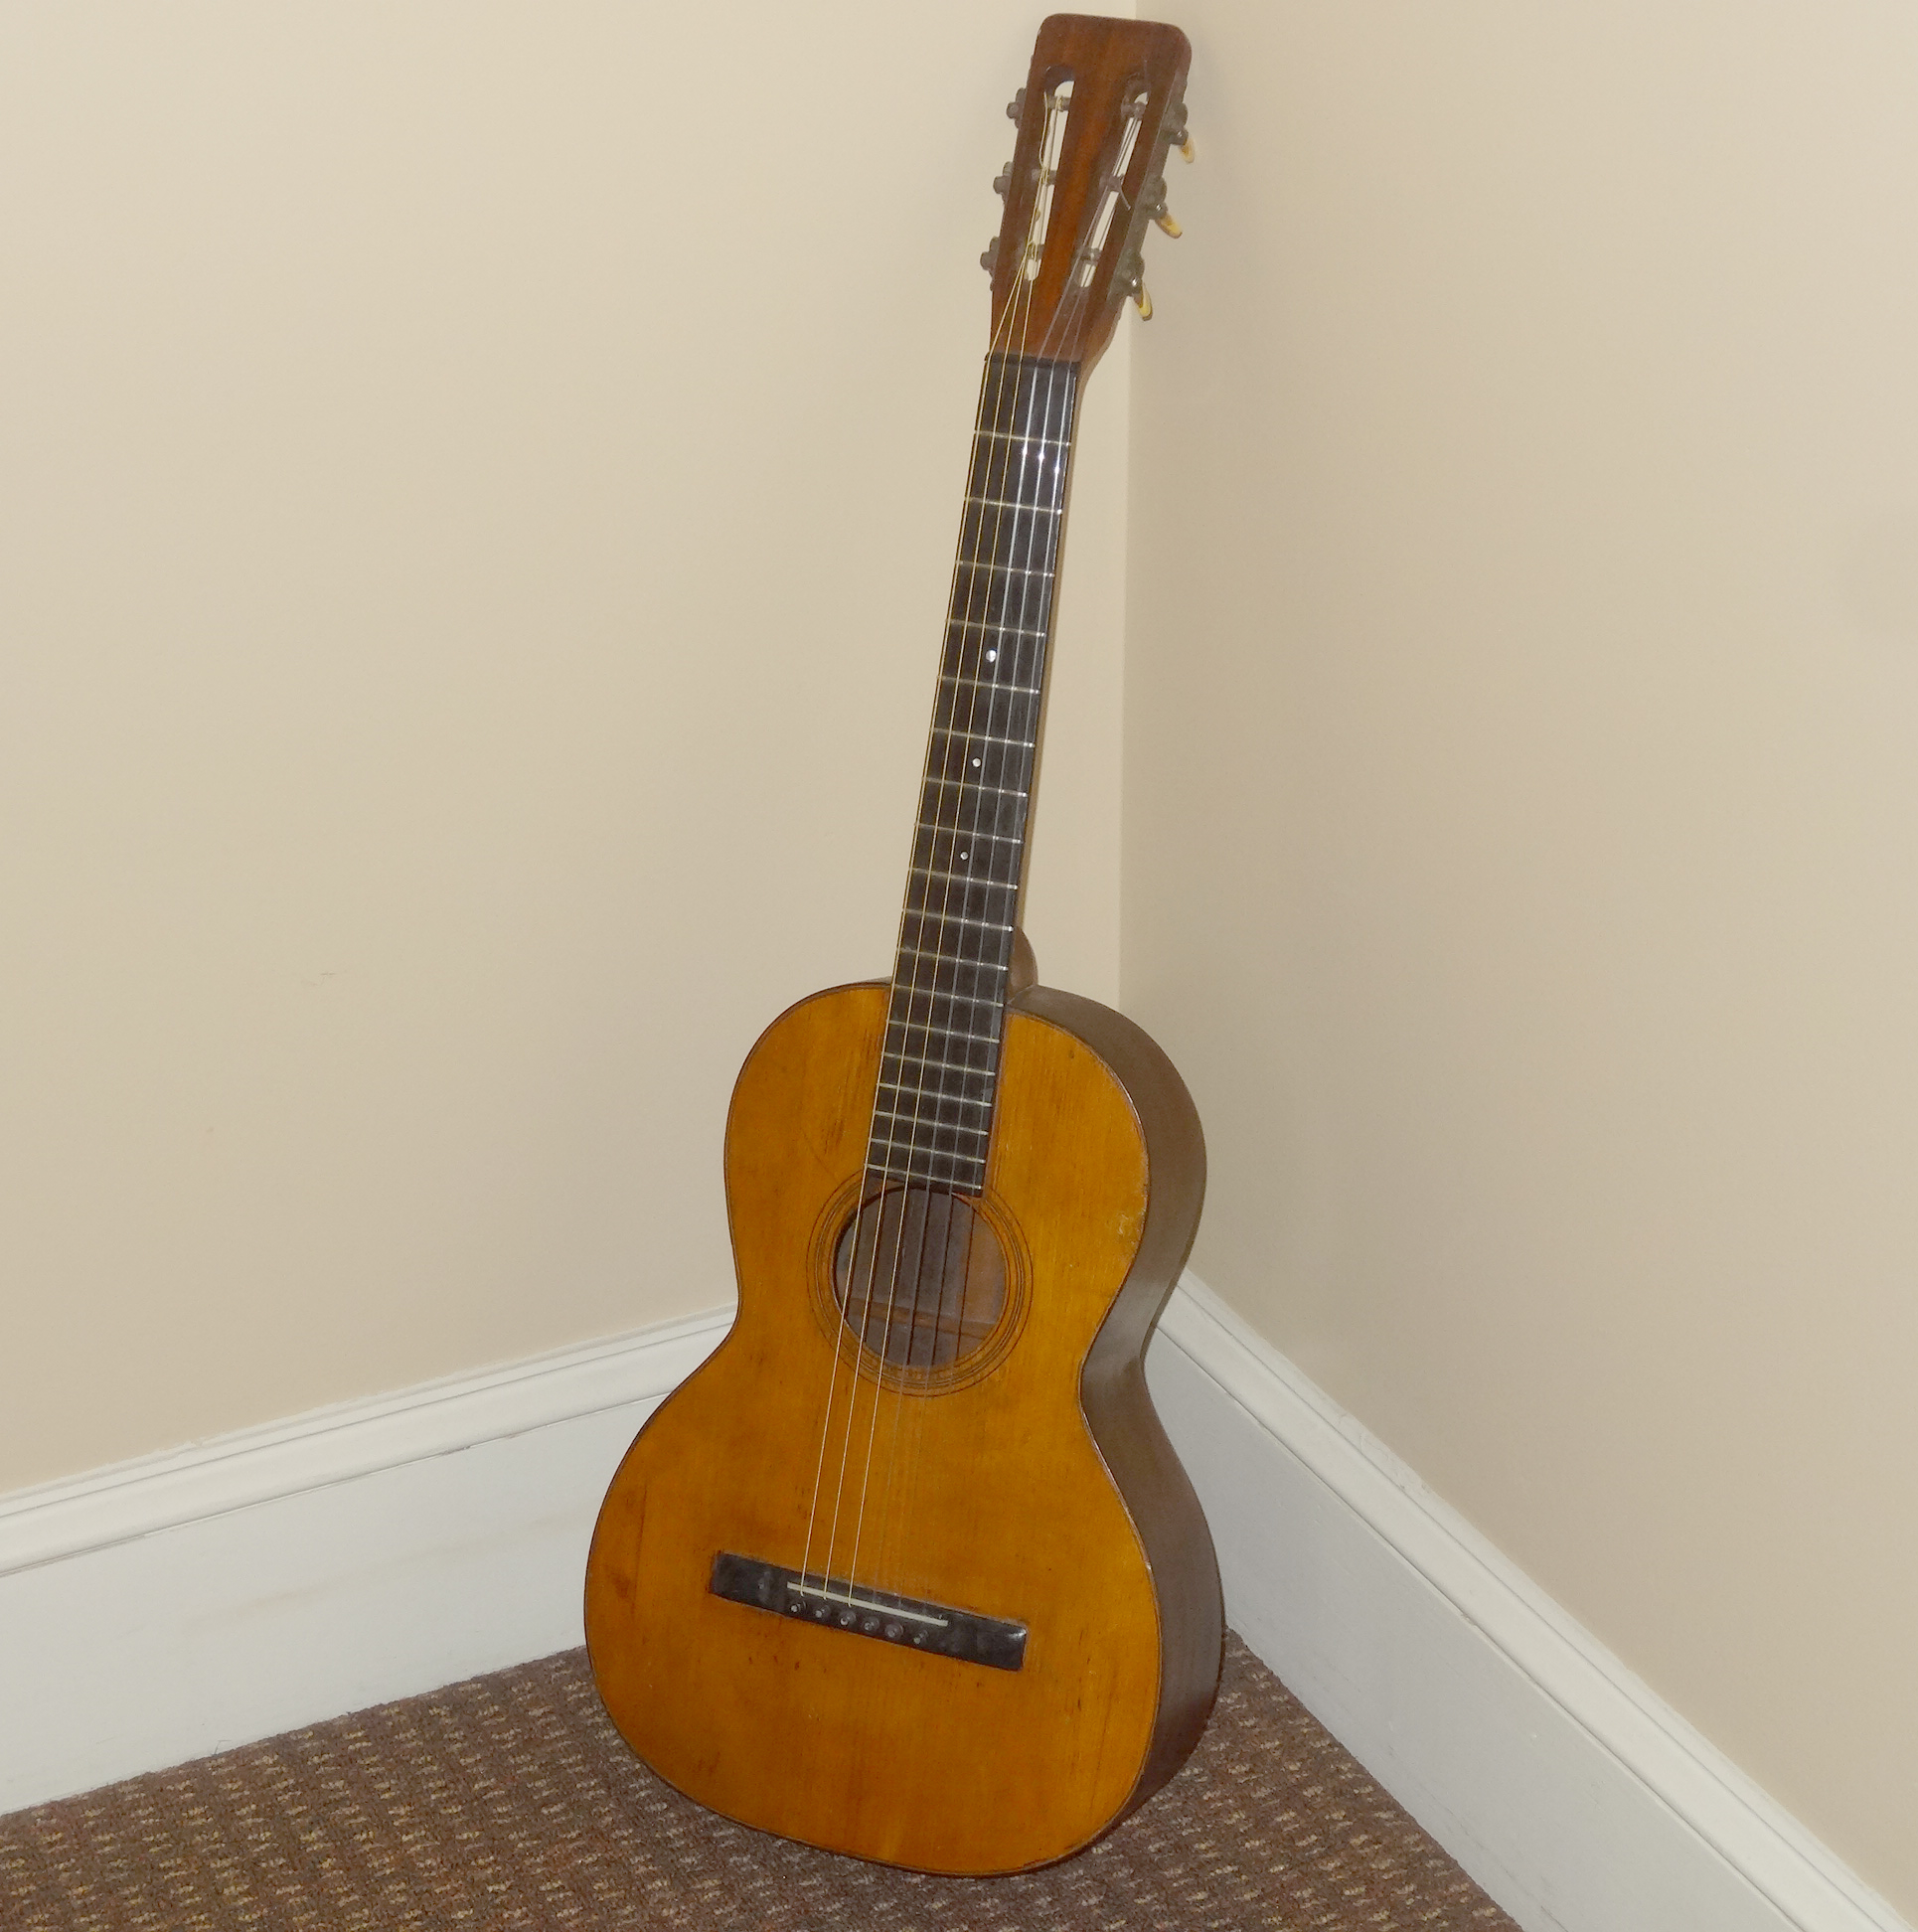 Martin parlor guitar, 2017, repaired! - The Alan Sondheim Mail Archive